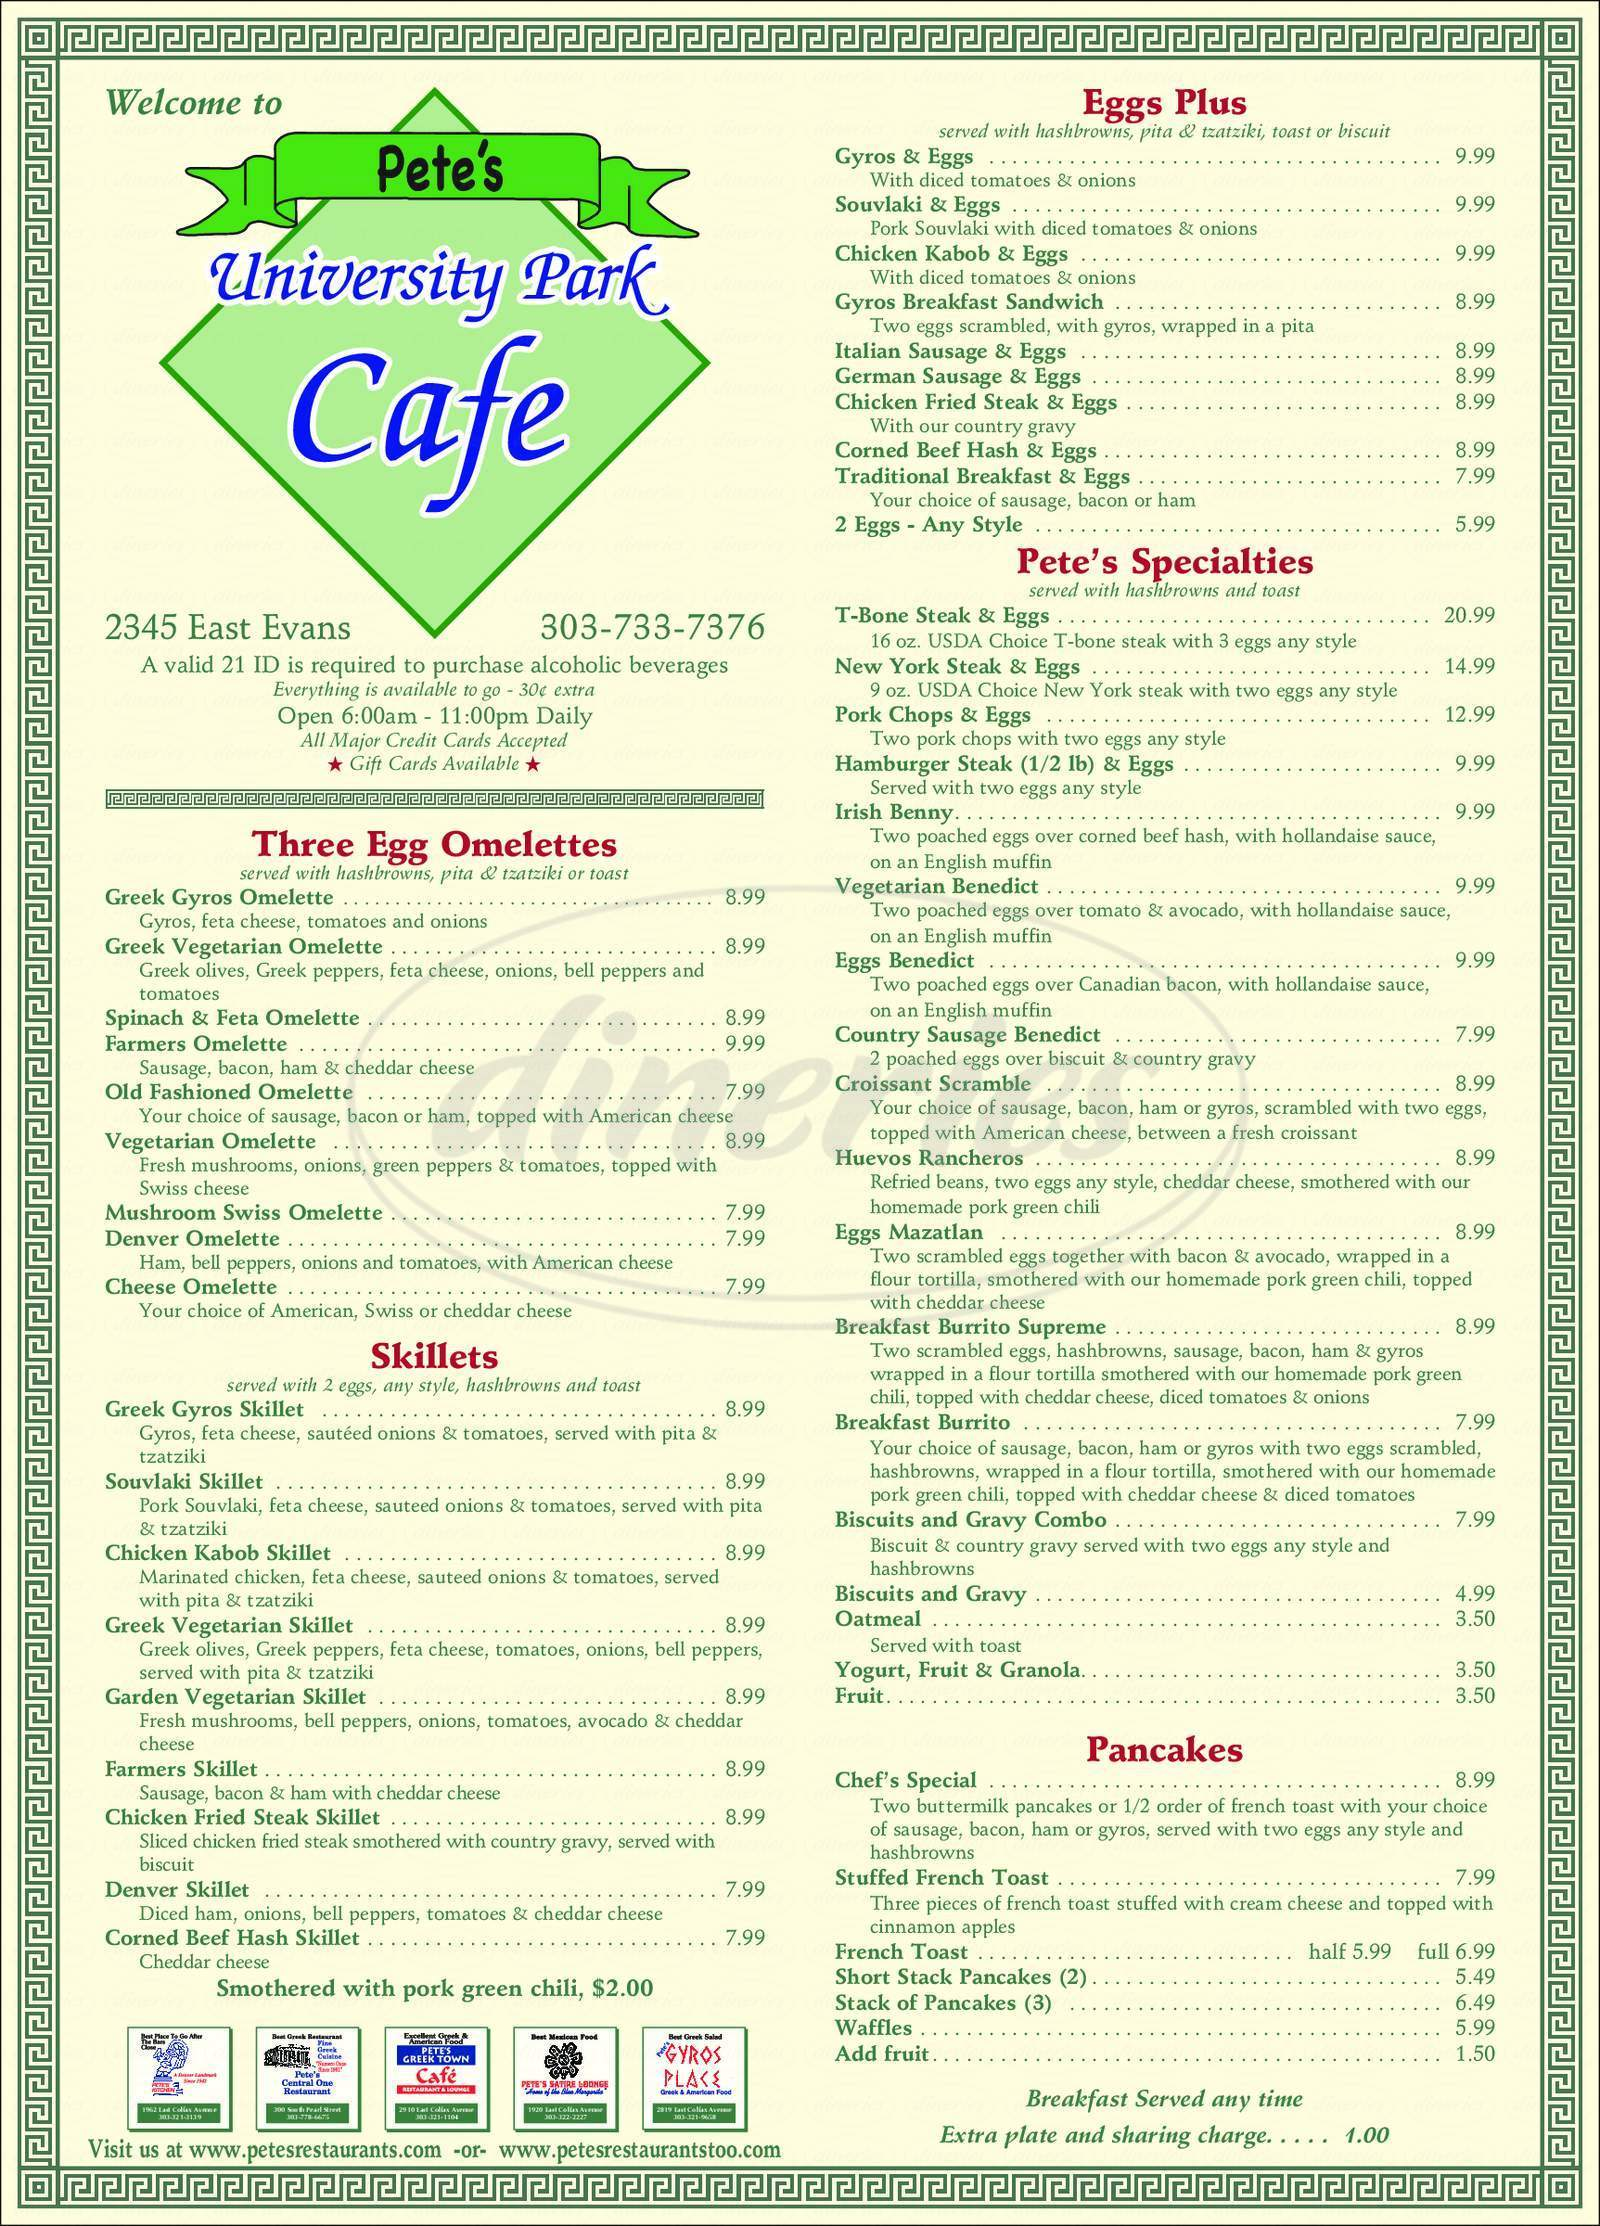 menu for Pete's University Park Cafe